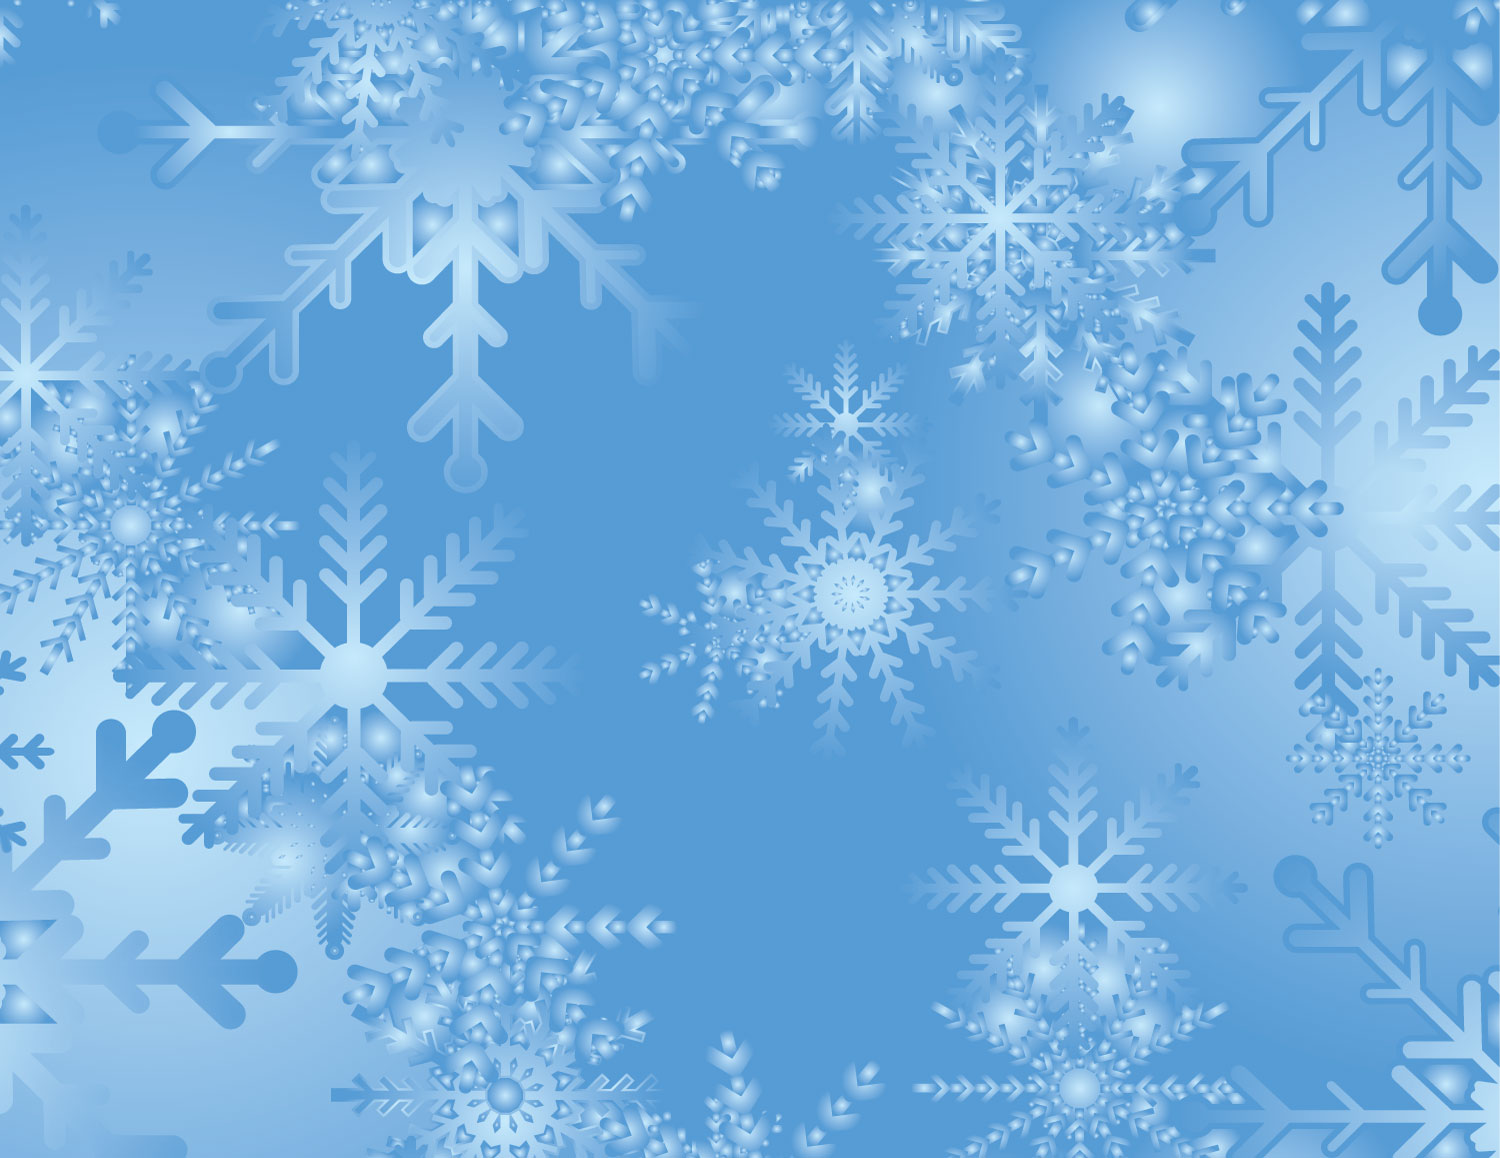 Snowflake backgrounds wallpapersafari